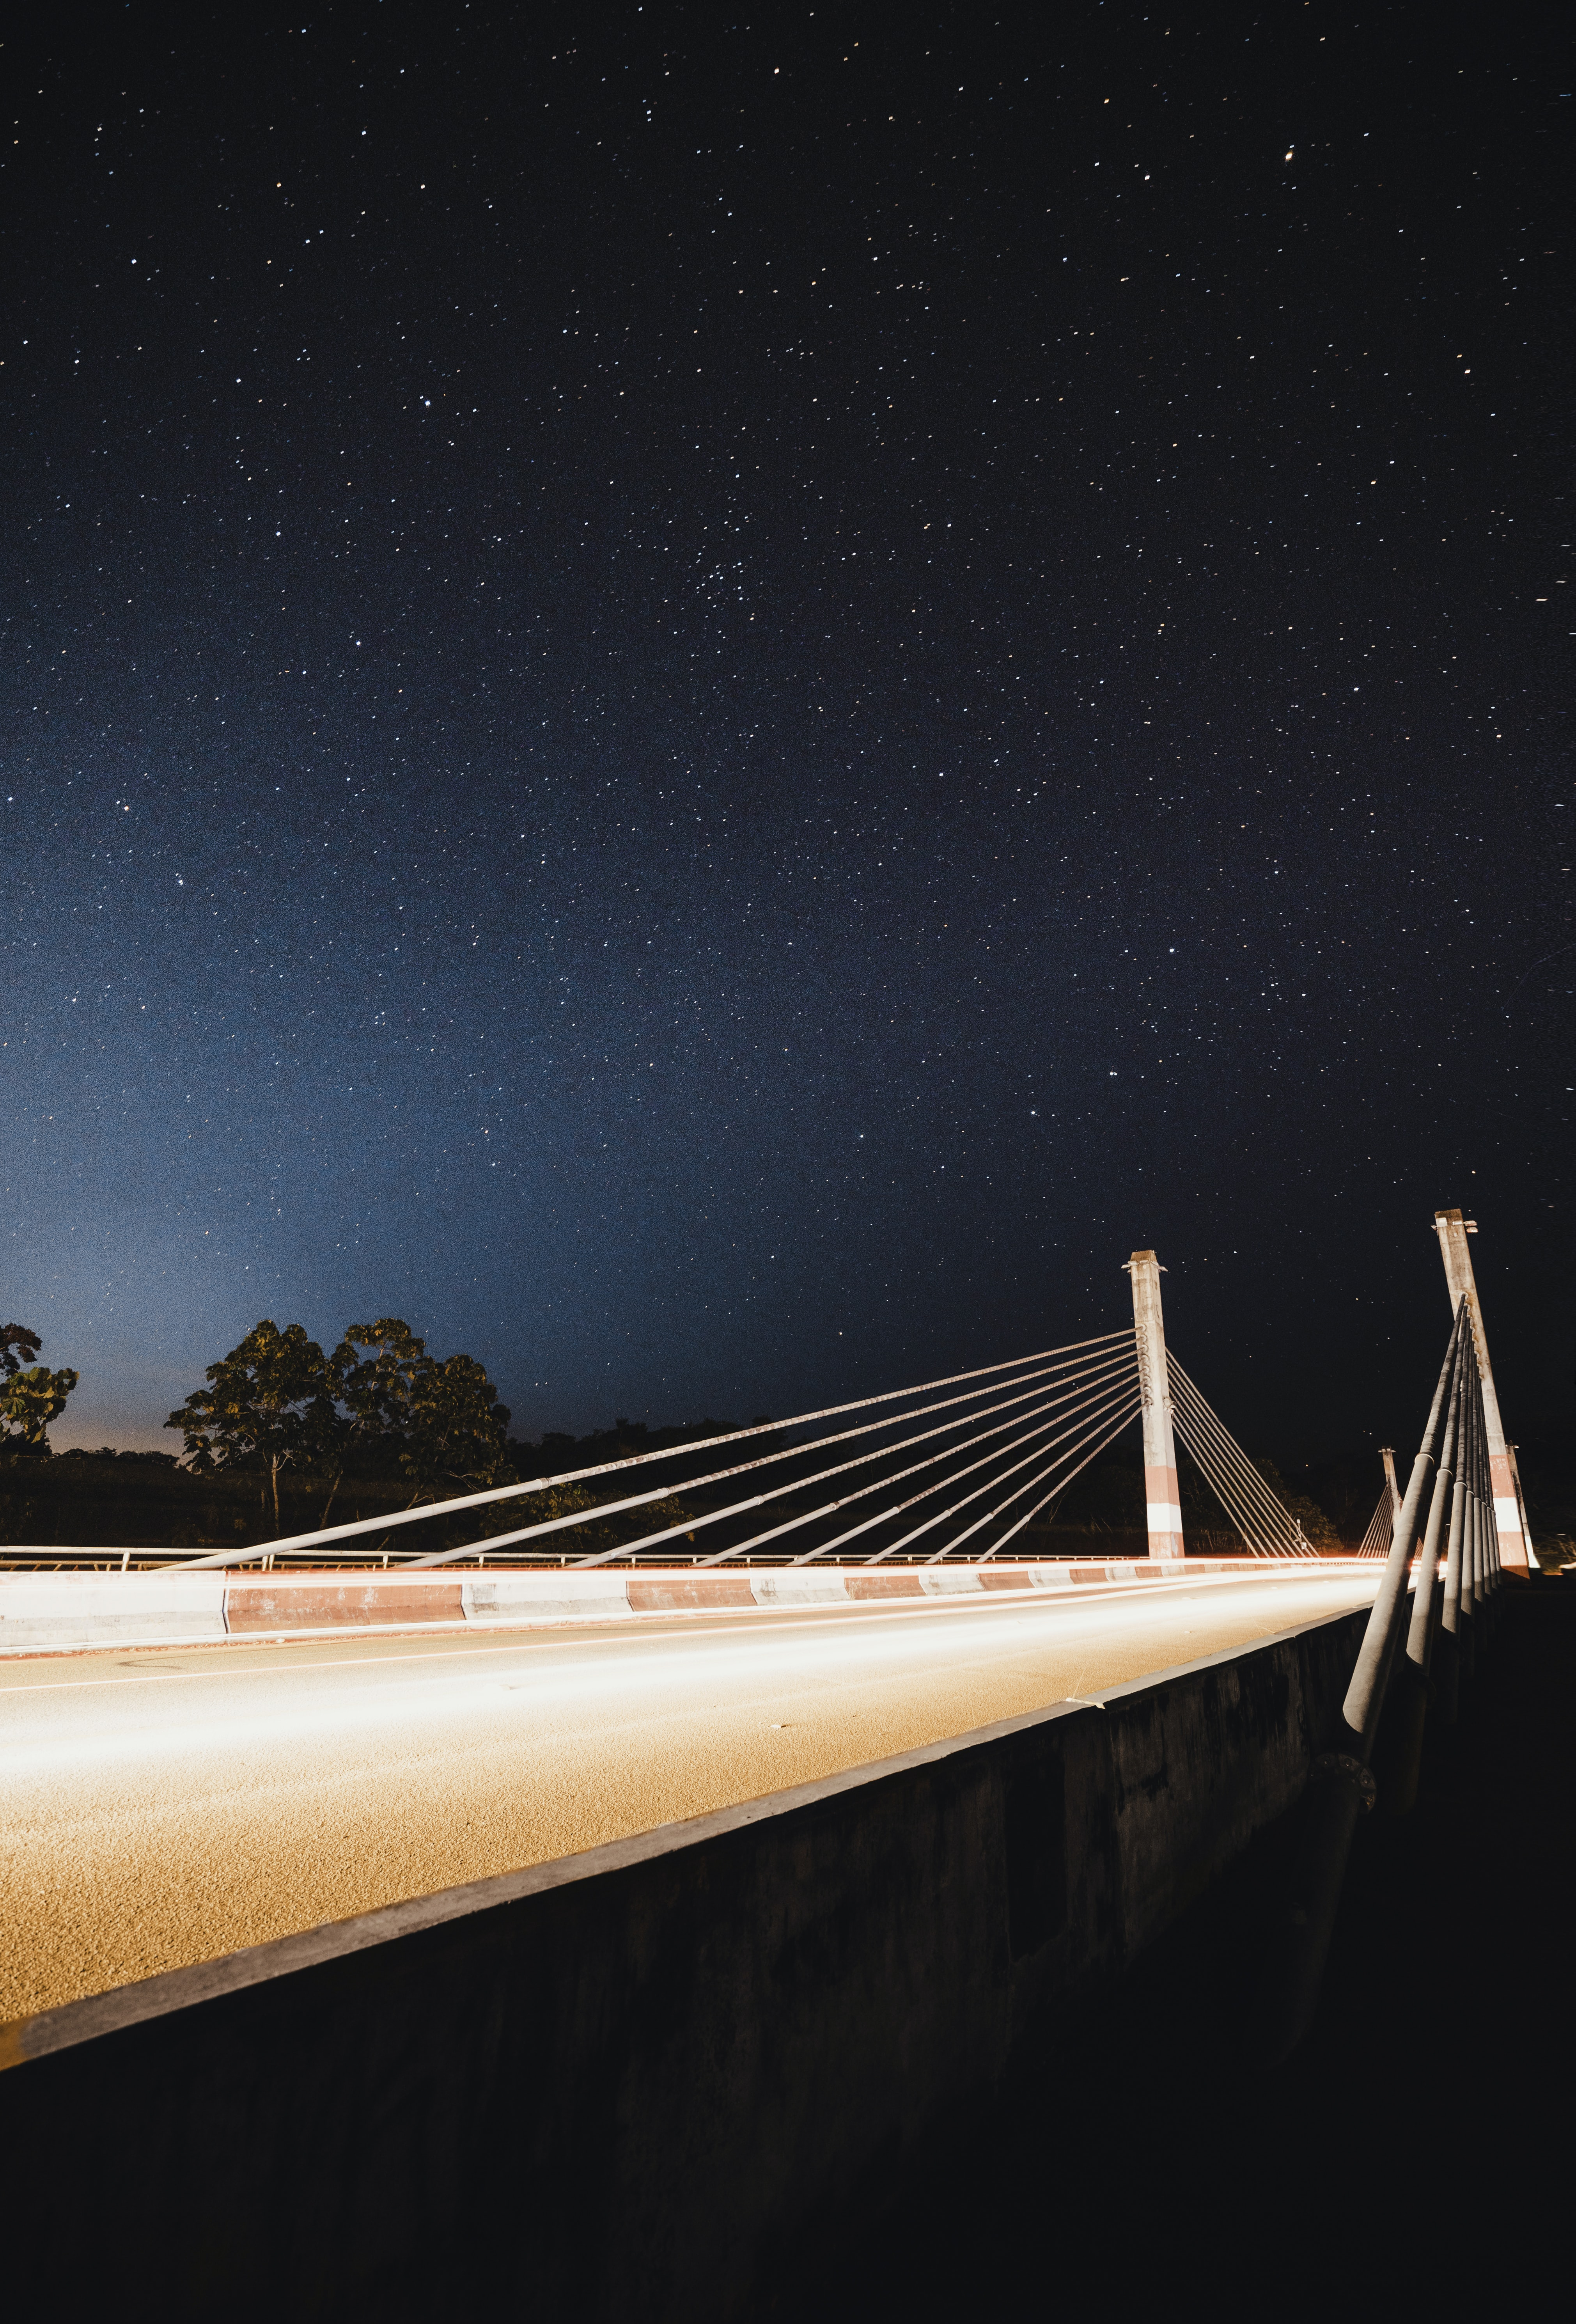 photo of suspension bridge during nighttime